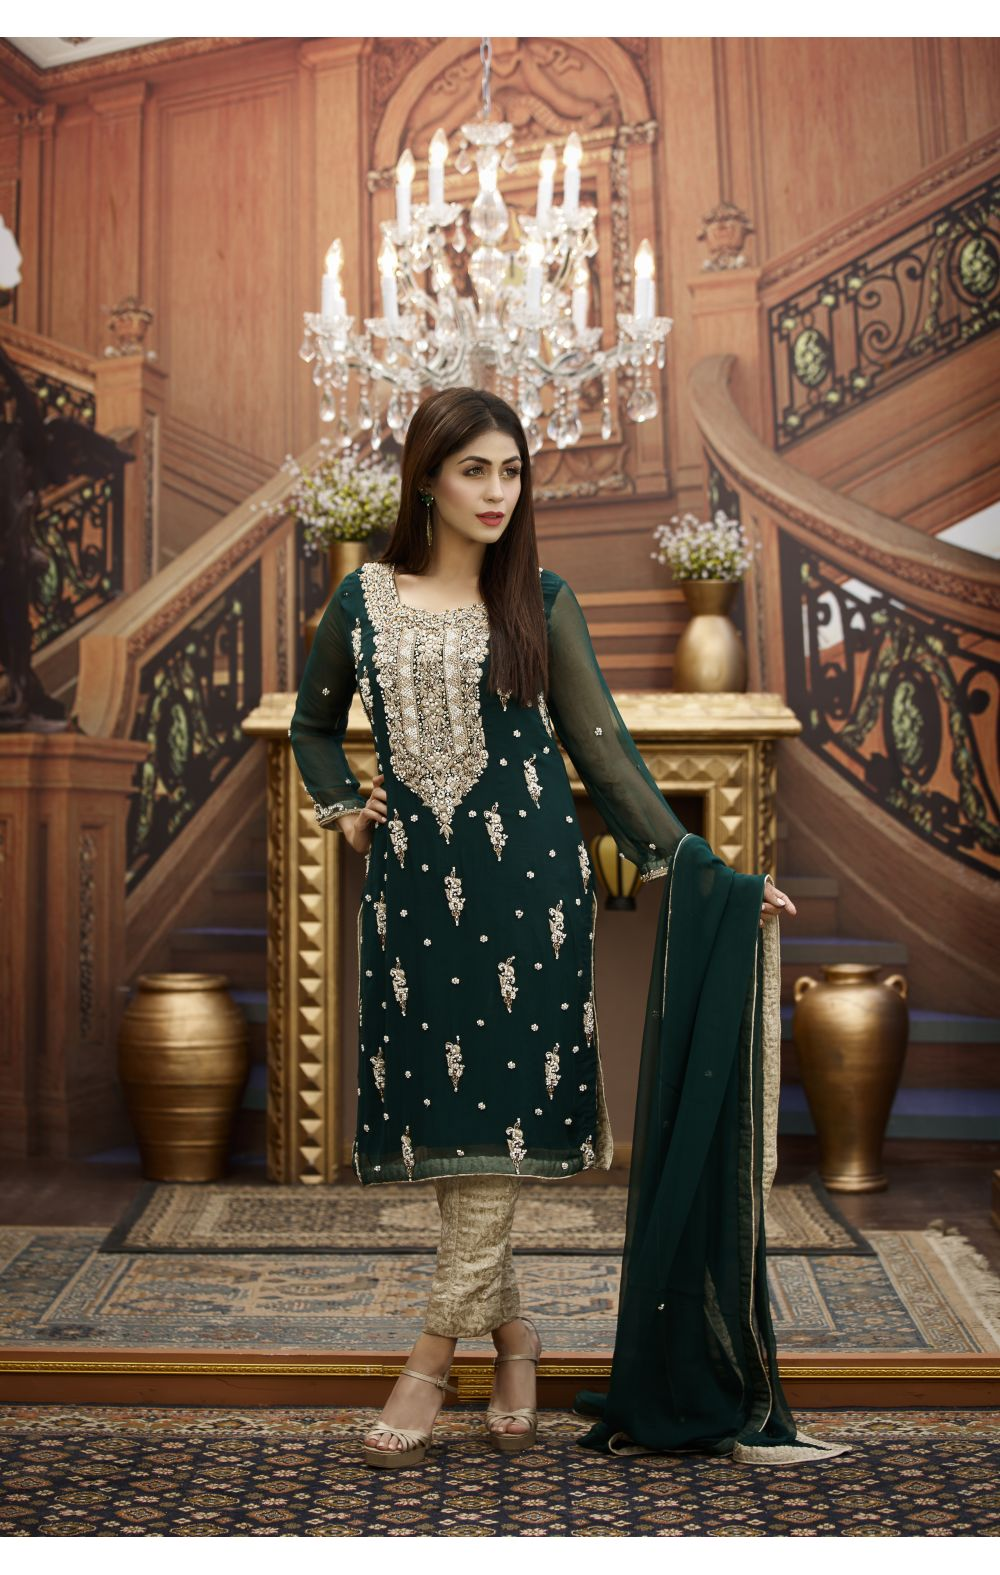 Buy Exclusive Bottle Green And Golden Bridal Wear – G16468 Online In USA, Uk & Pakistan - 01